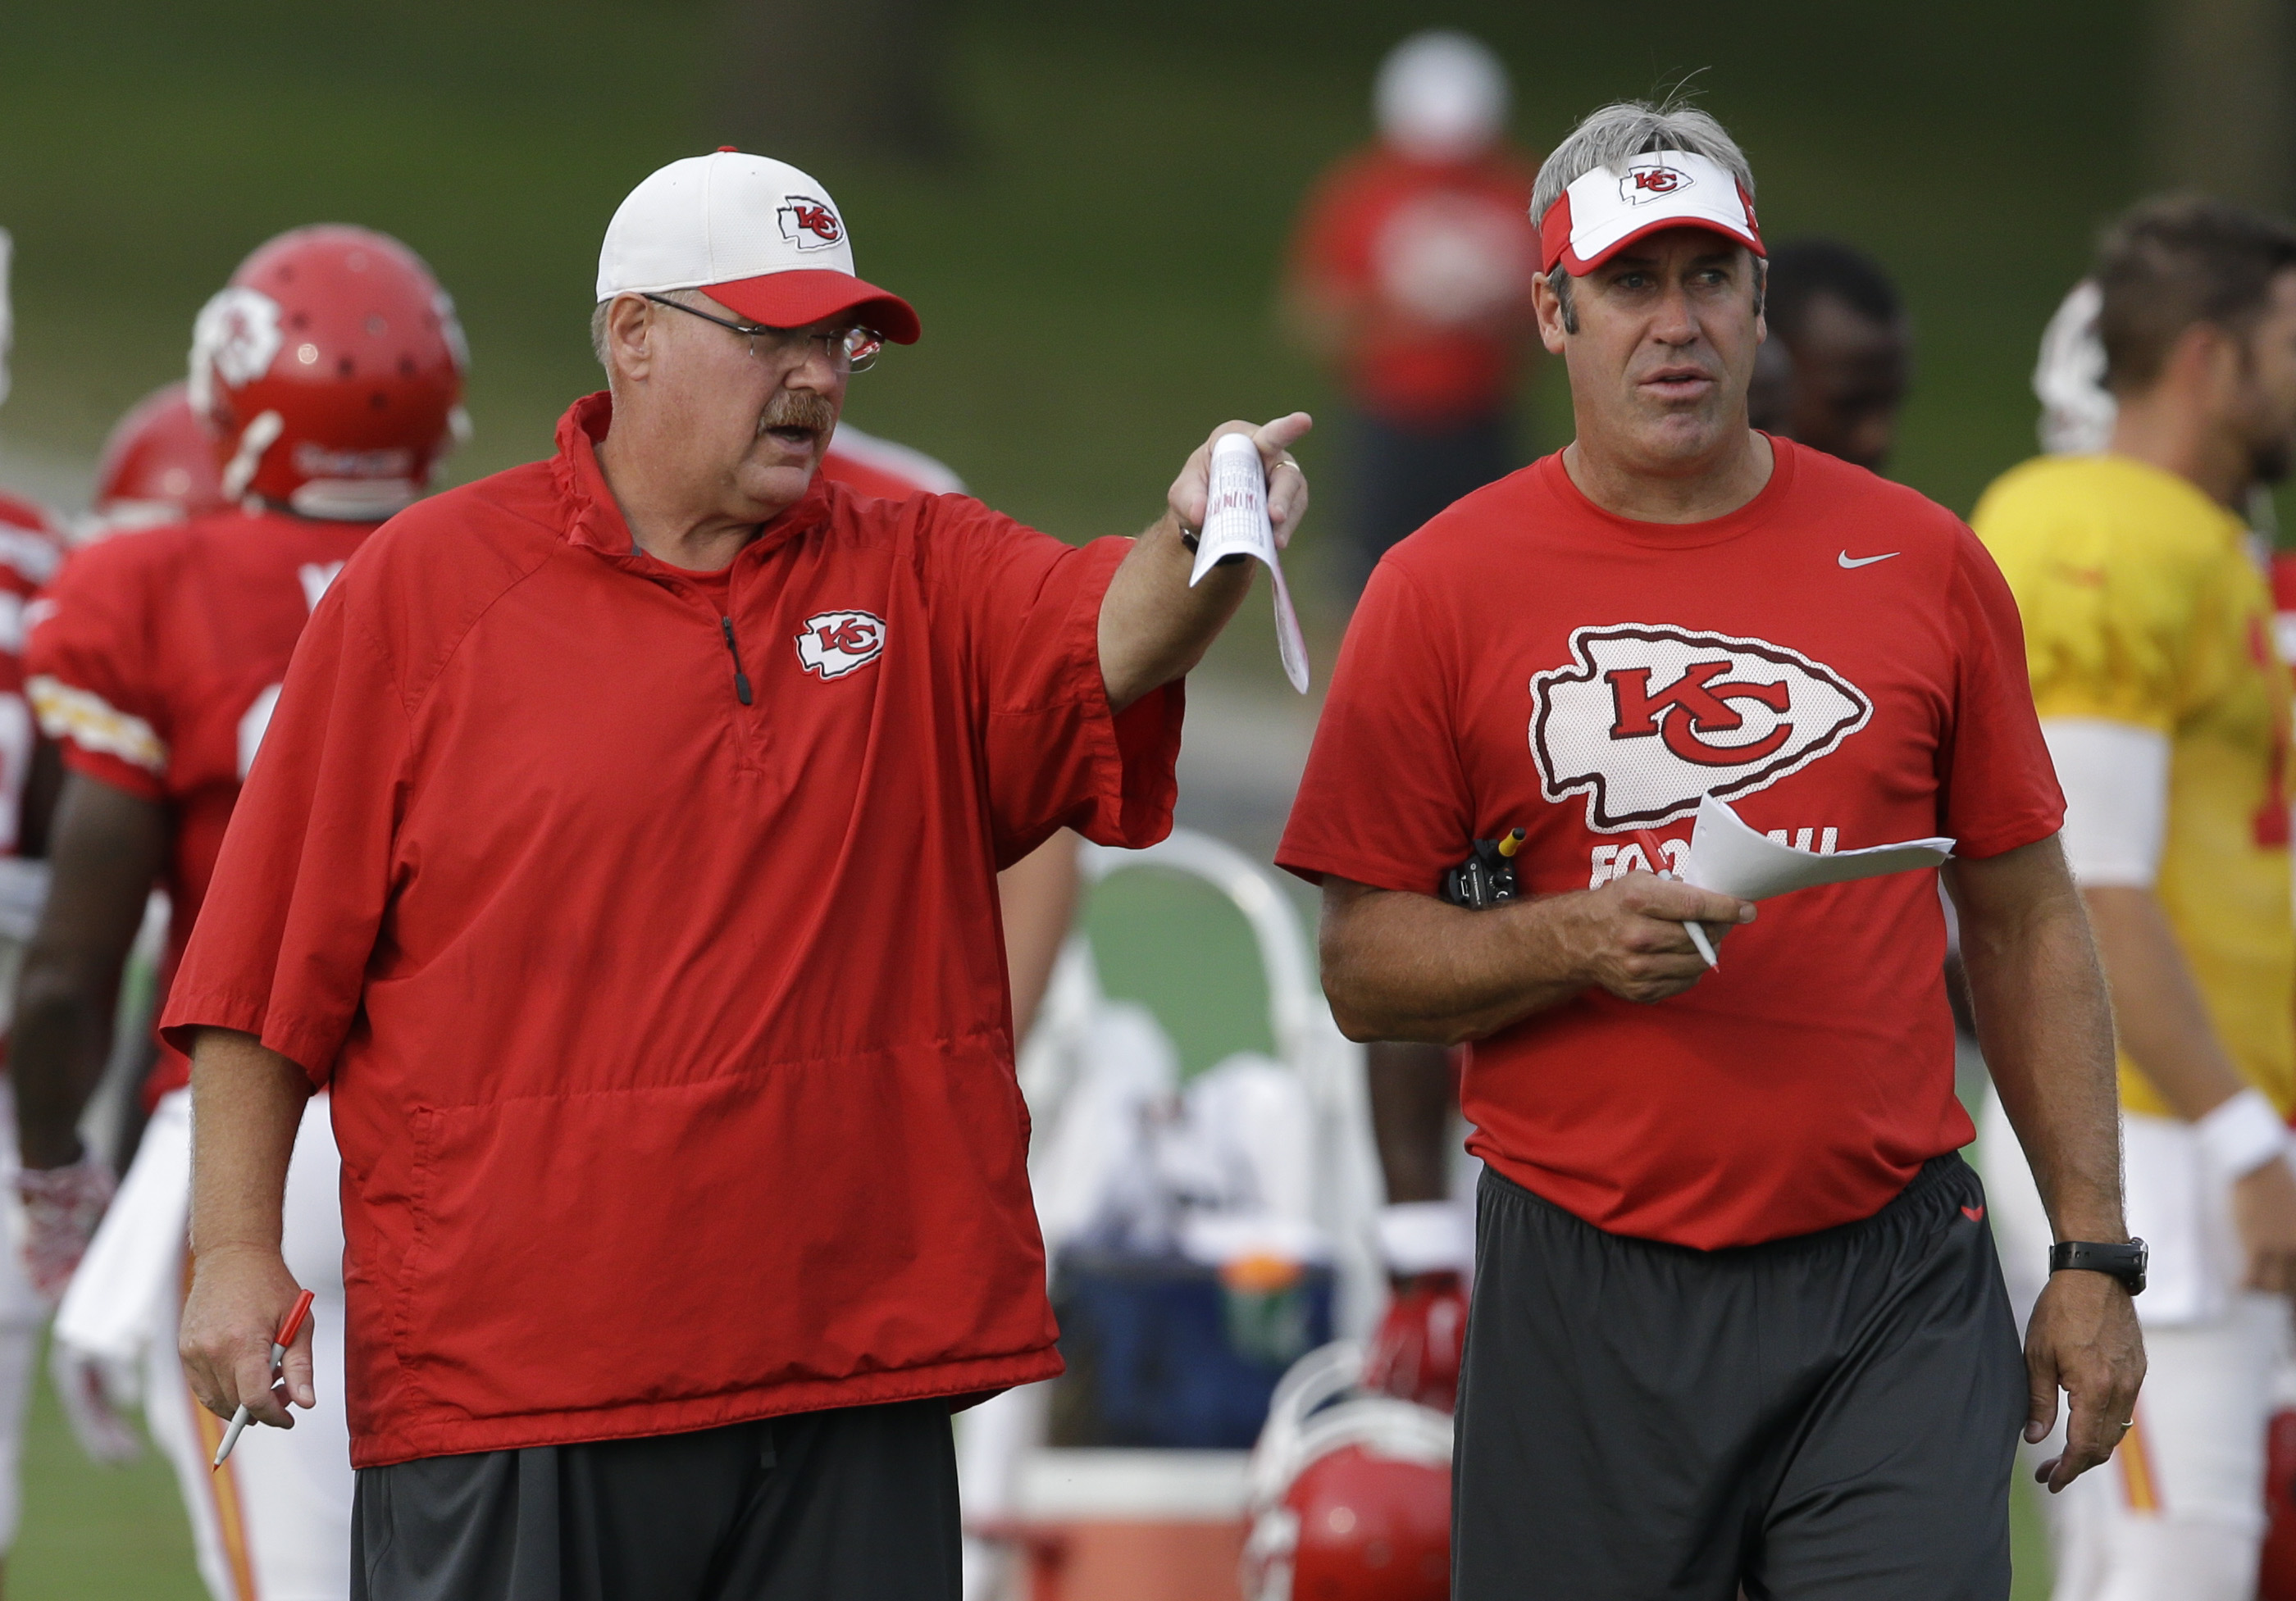 Kansas City Chiefs head coach Andy Reid, left, and offensive coordinator Doug Pederson, right, talk during NFL football training camp in St. Joseph, Mo., Monday, Aug. 17, 2015. (AP Photo/Orlin Wagner)